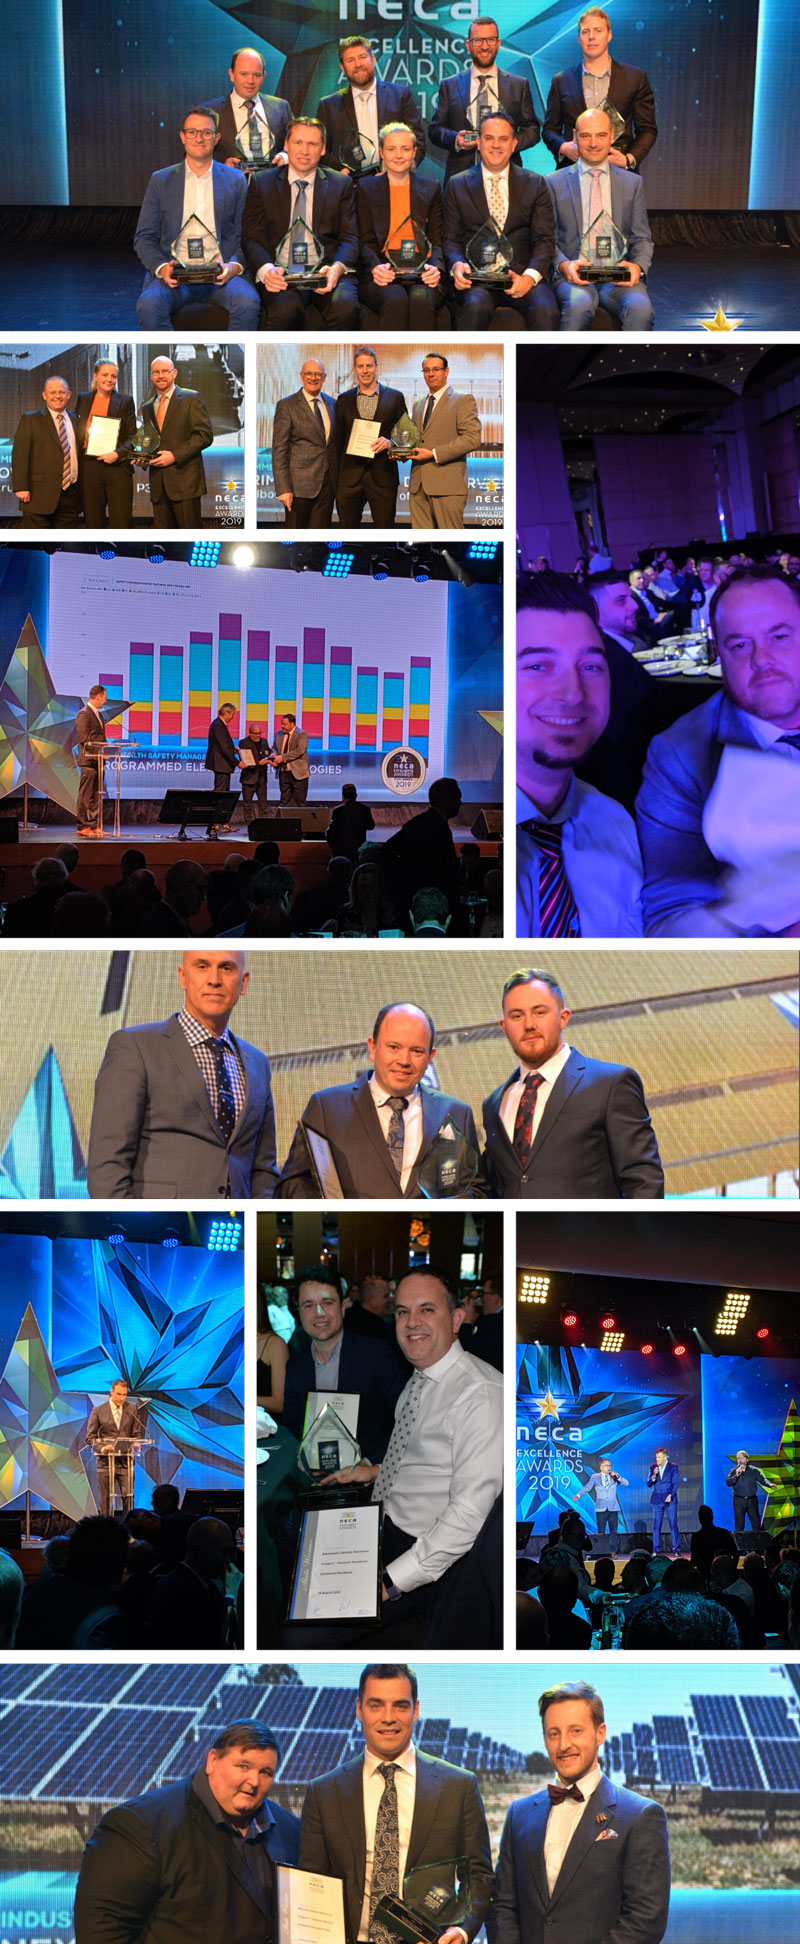 NECA VIC awards photo collage